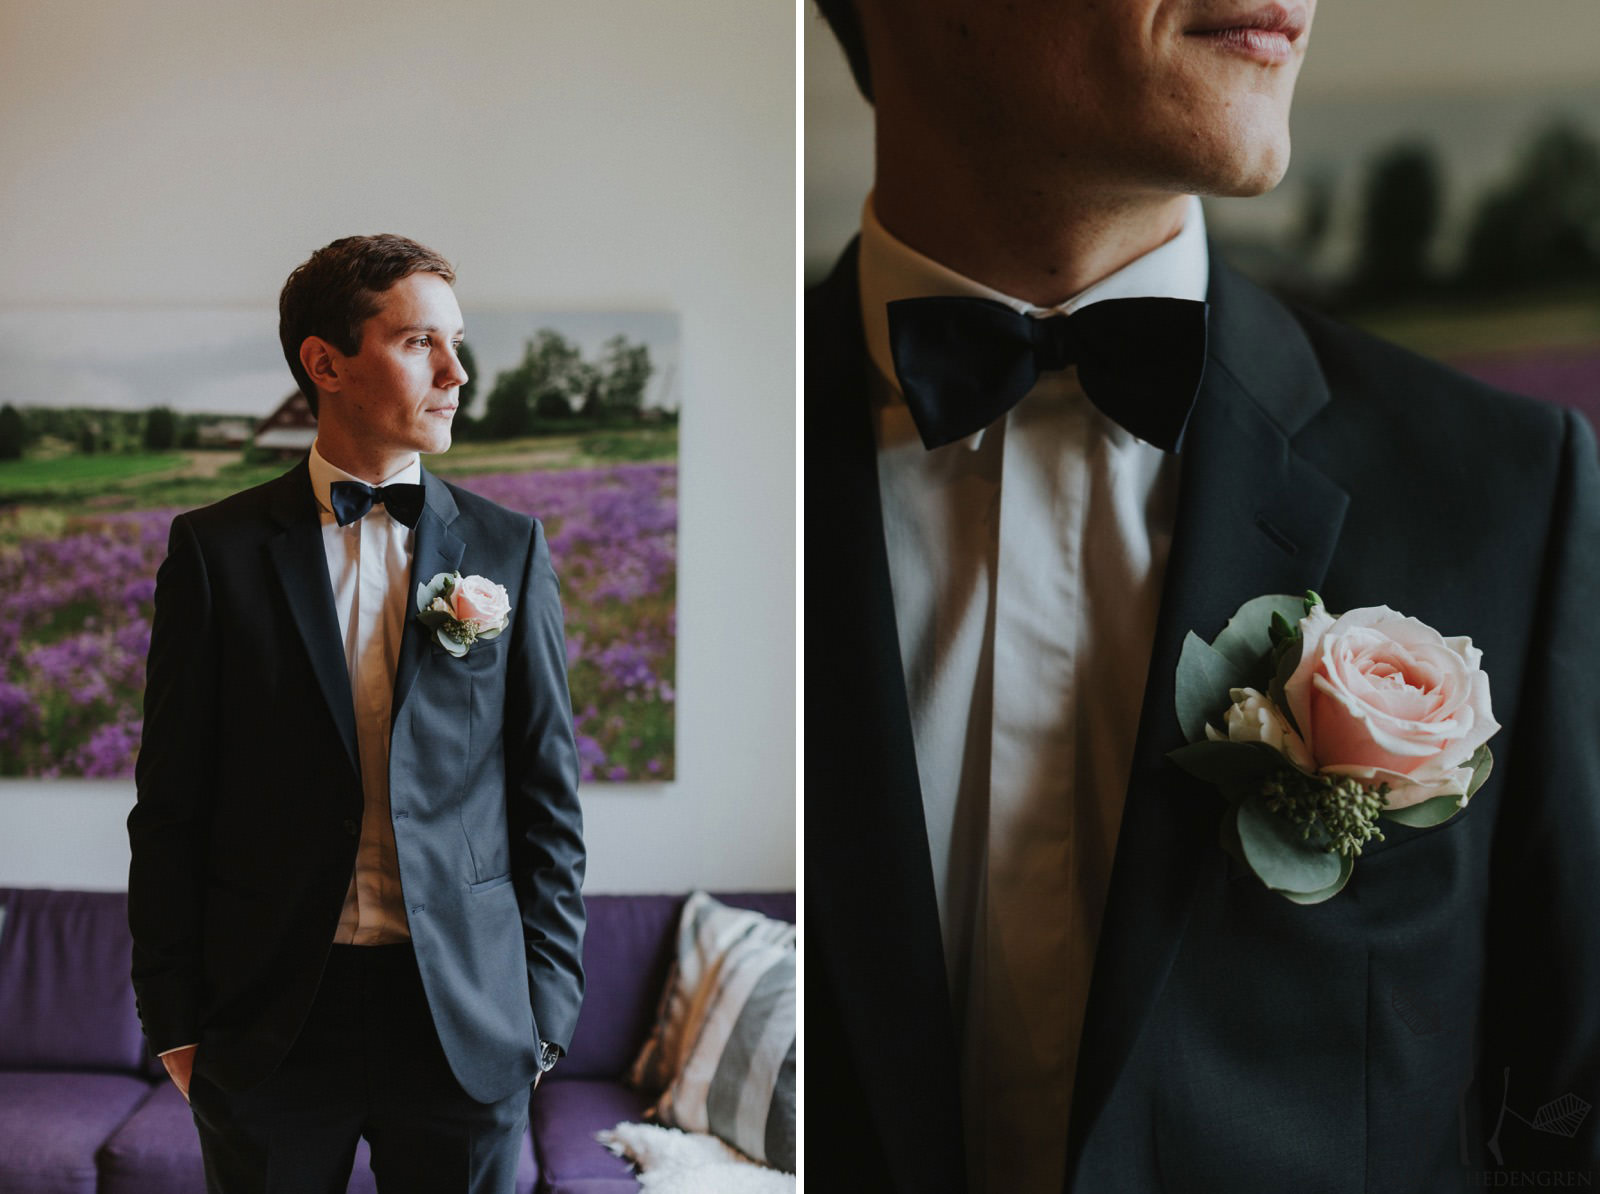 French groom